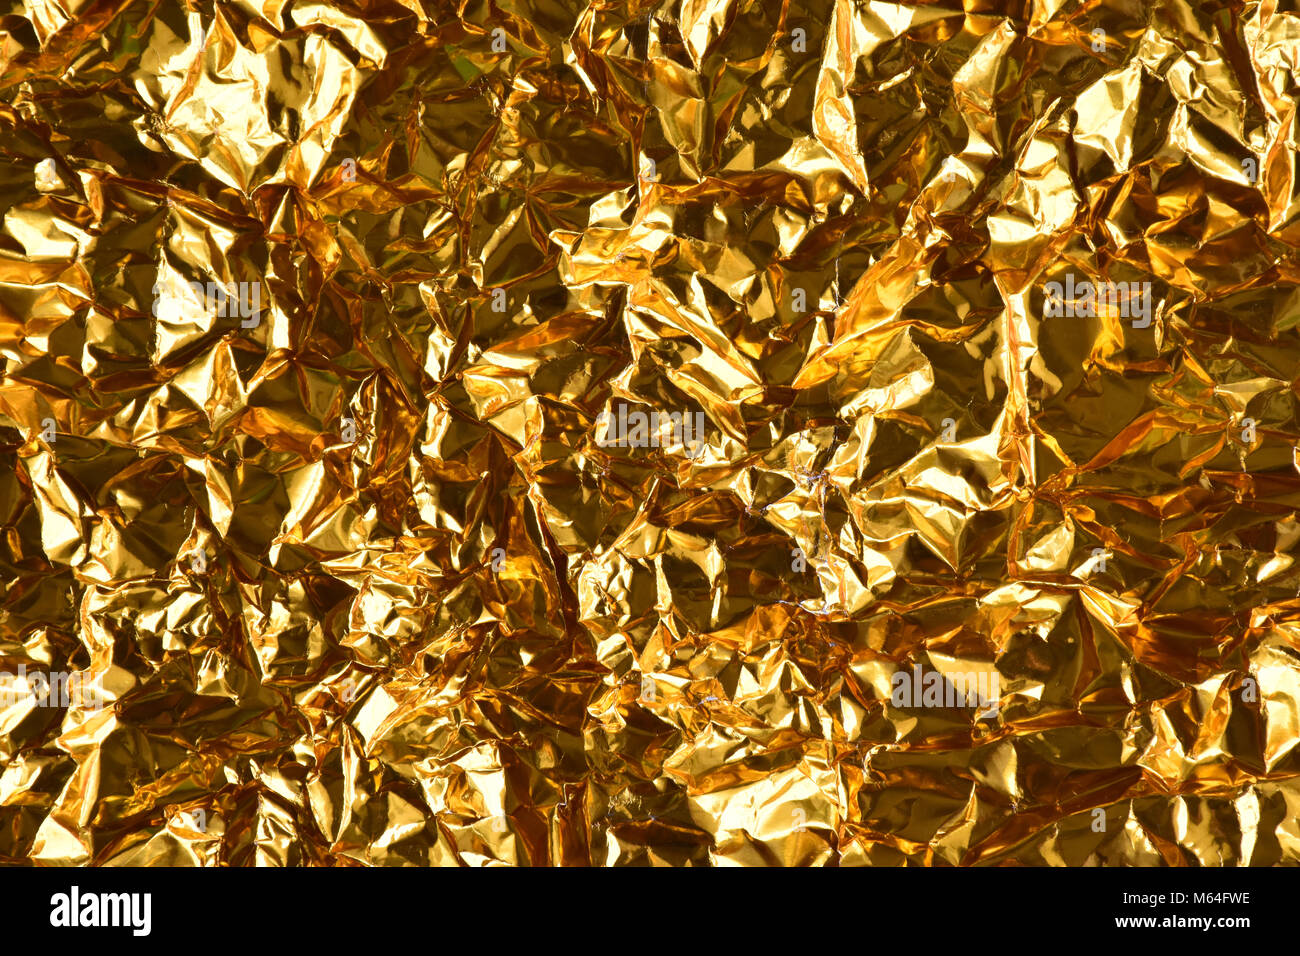 Screwed up  crumpled gold and silver foil - Stock Image